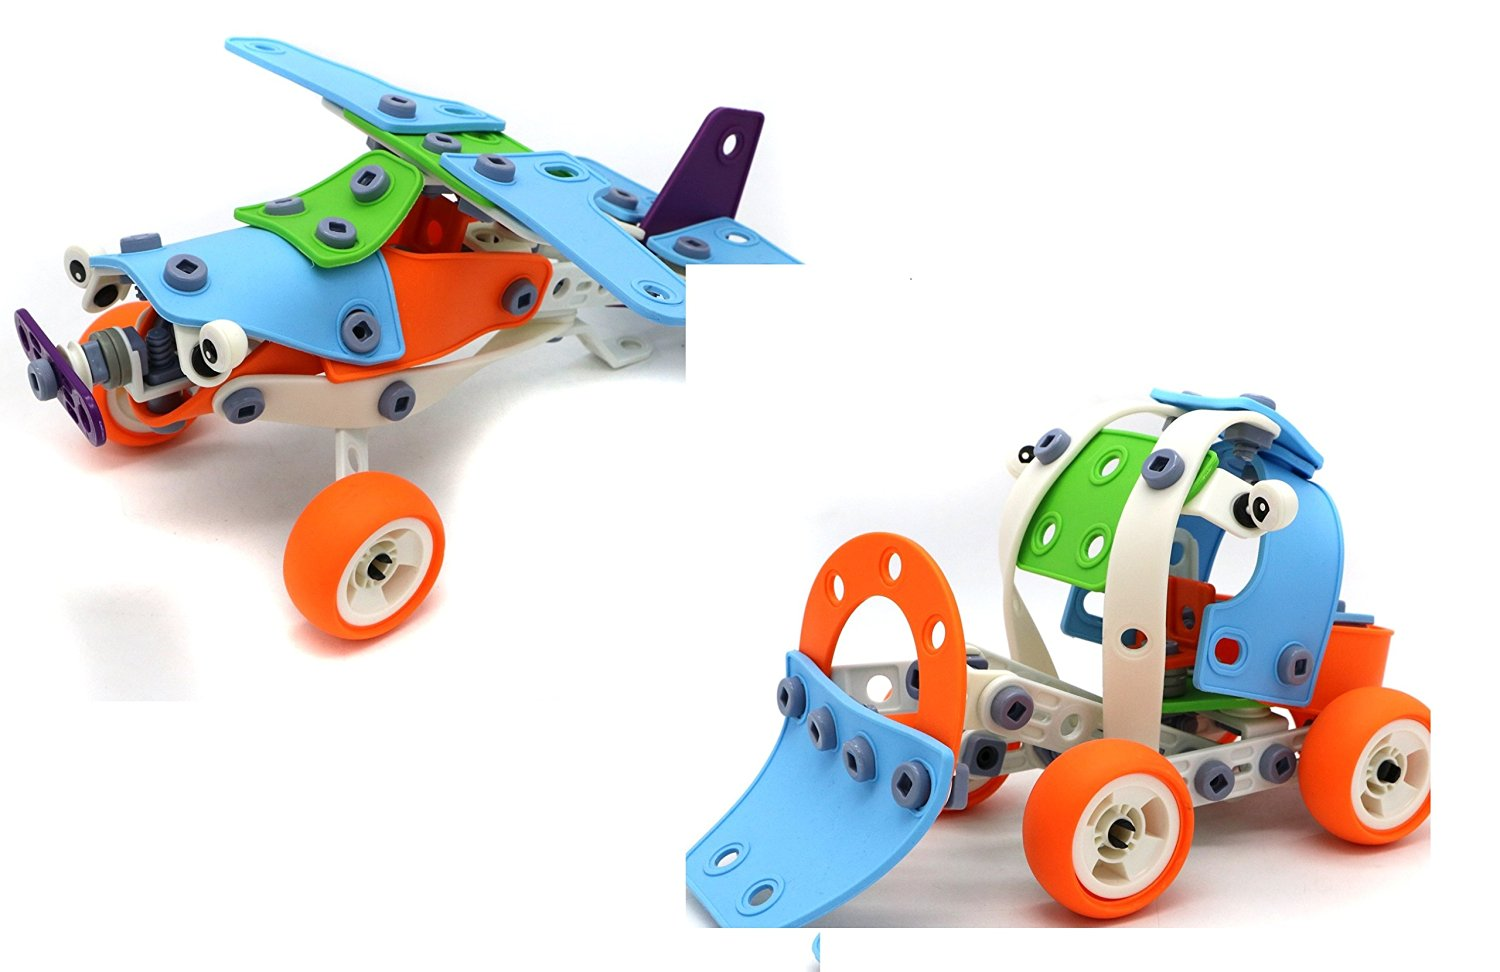 Verzabo Do It Yourself 132 Piece Build And Play Custom Design Set For Children Allows Them to Build Their Own Plane, Car or Custom Vehicle